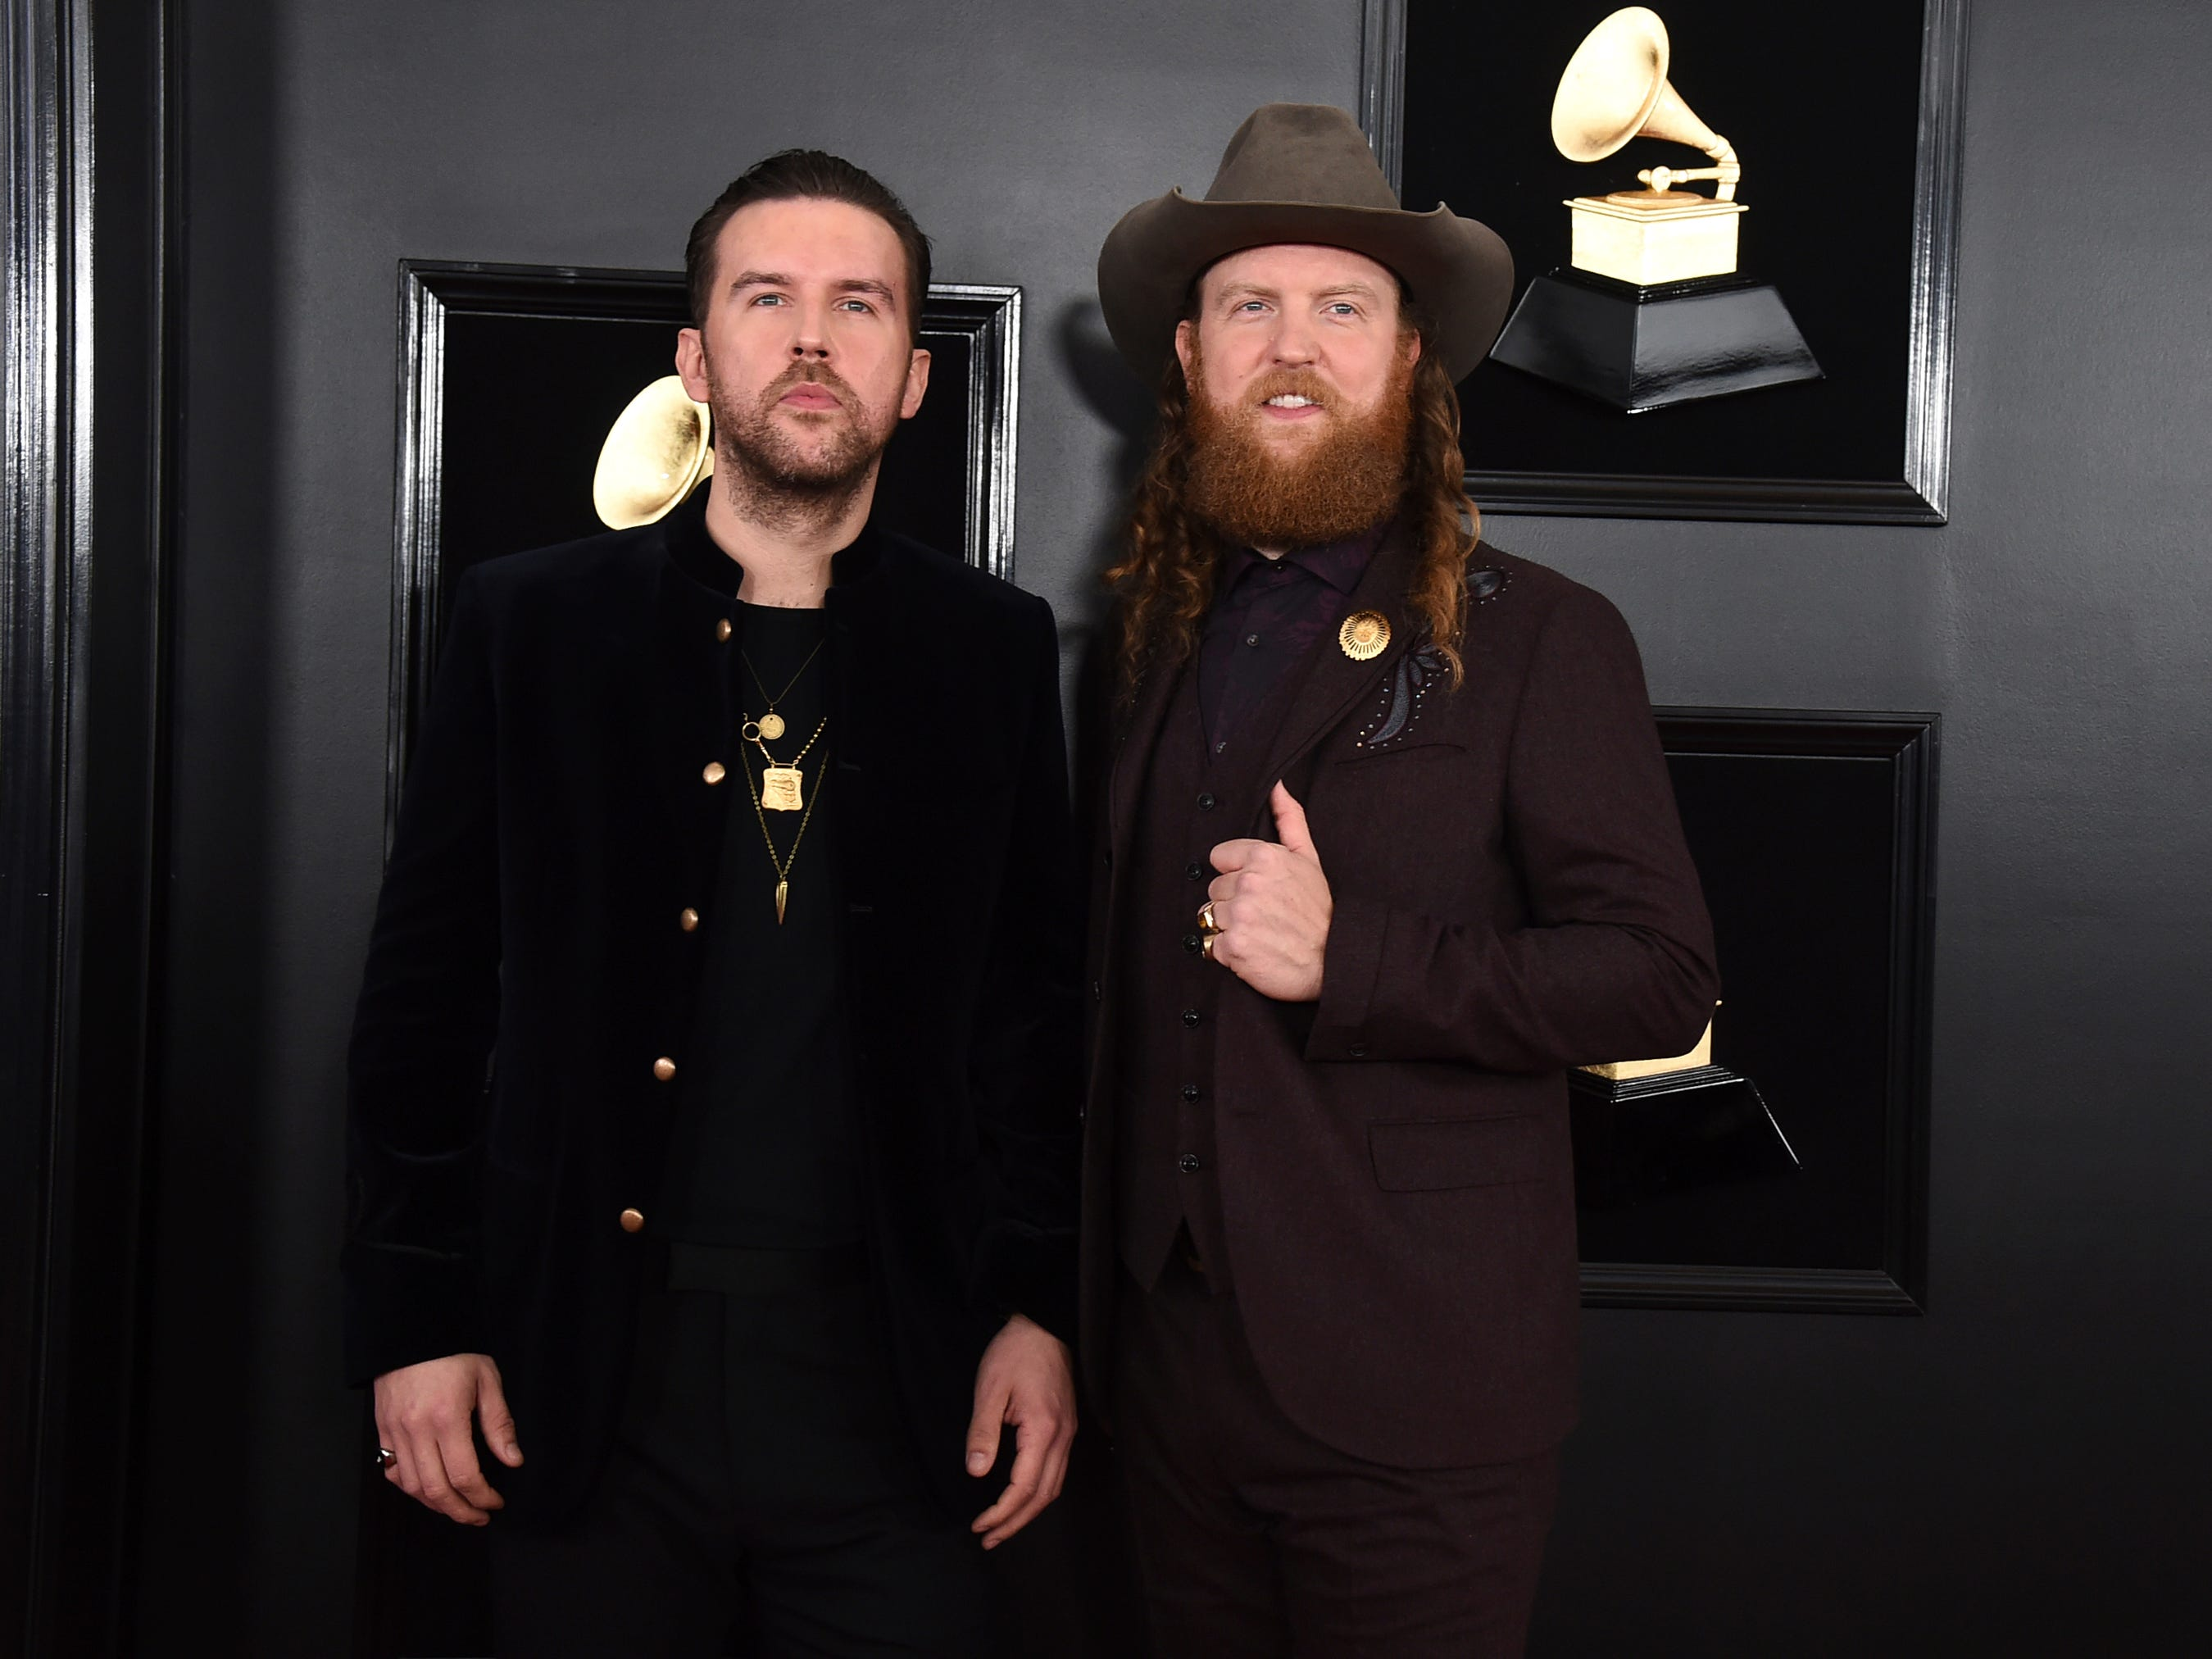 T.J. Osborne, left, and John Osborne of Brothers Osborne arrive at the 61st annual Grammy Awards at the Staples Center on Sunday, Feb. 10, 2019, in Los Angeles.